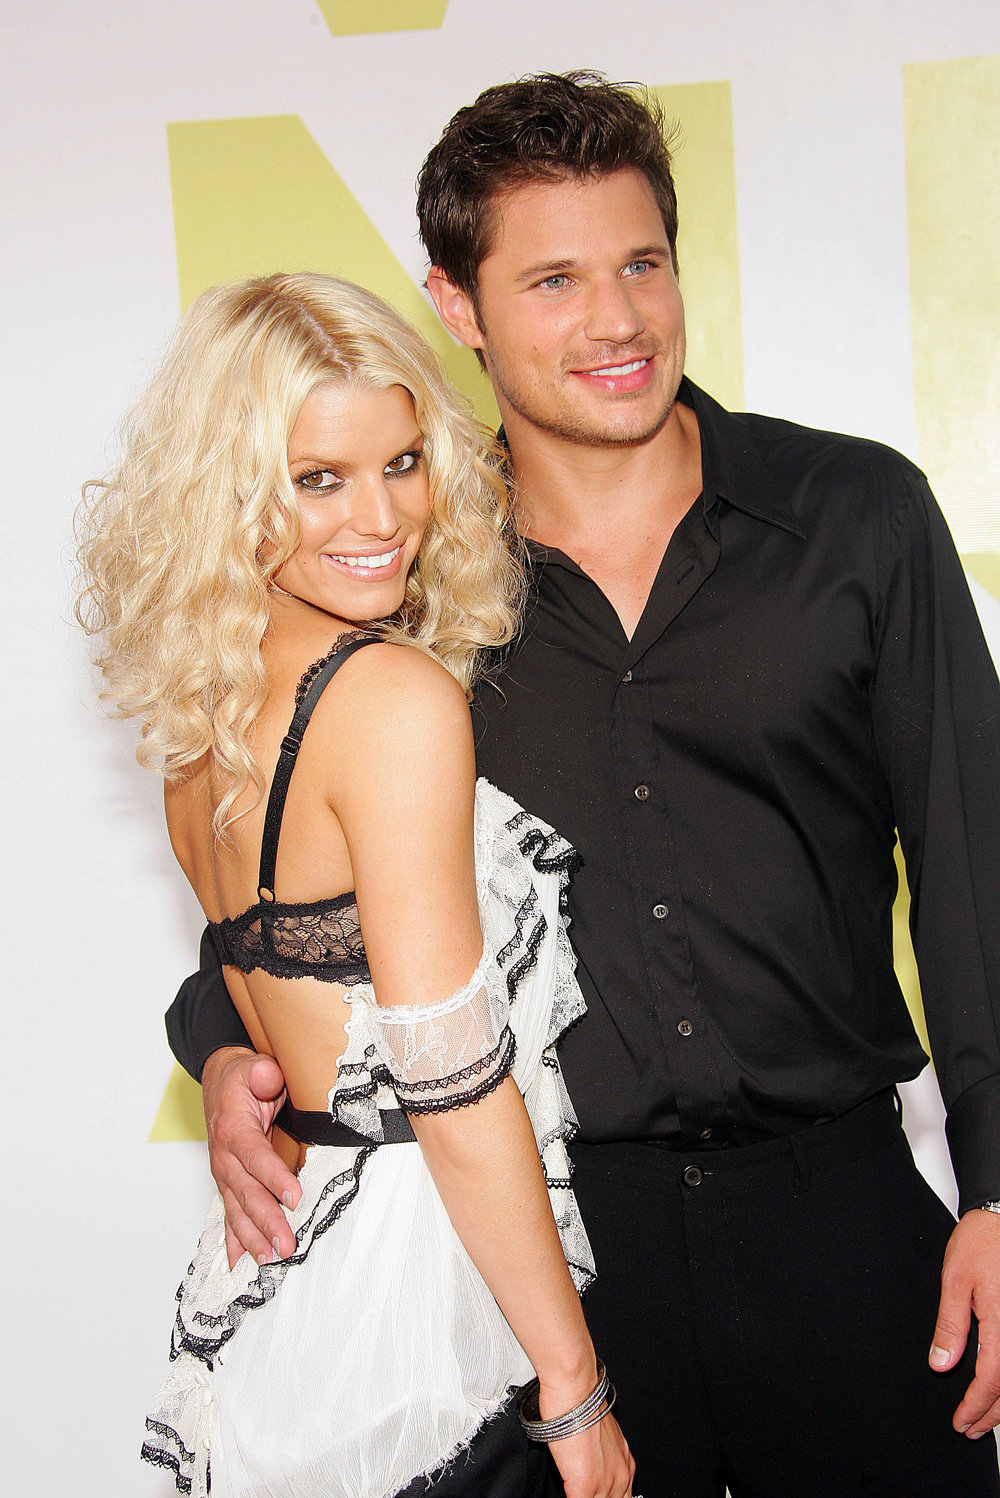 jessica-simpson-and-nick-lachey.jpg